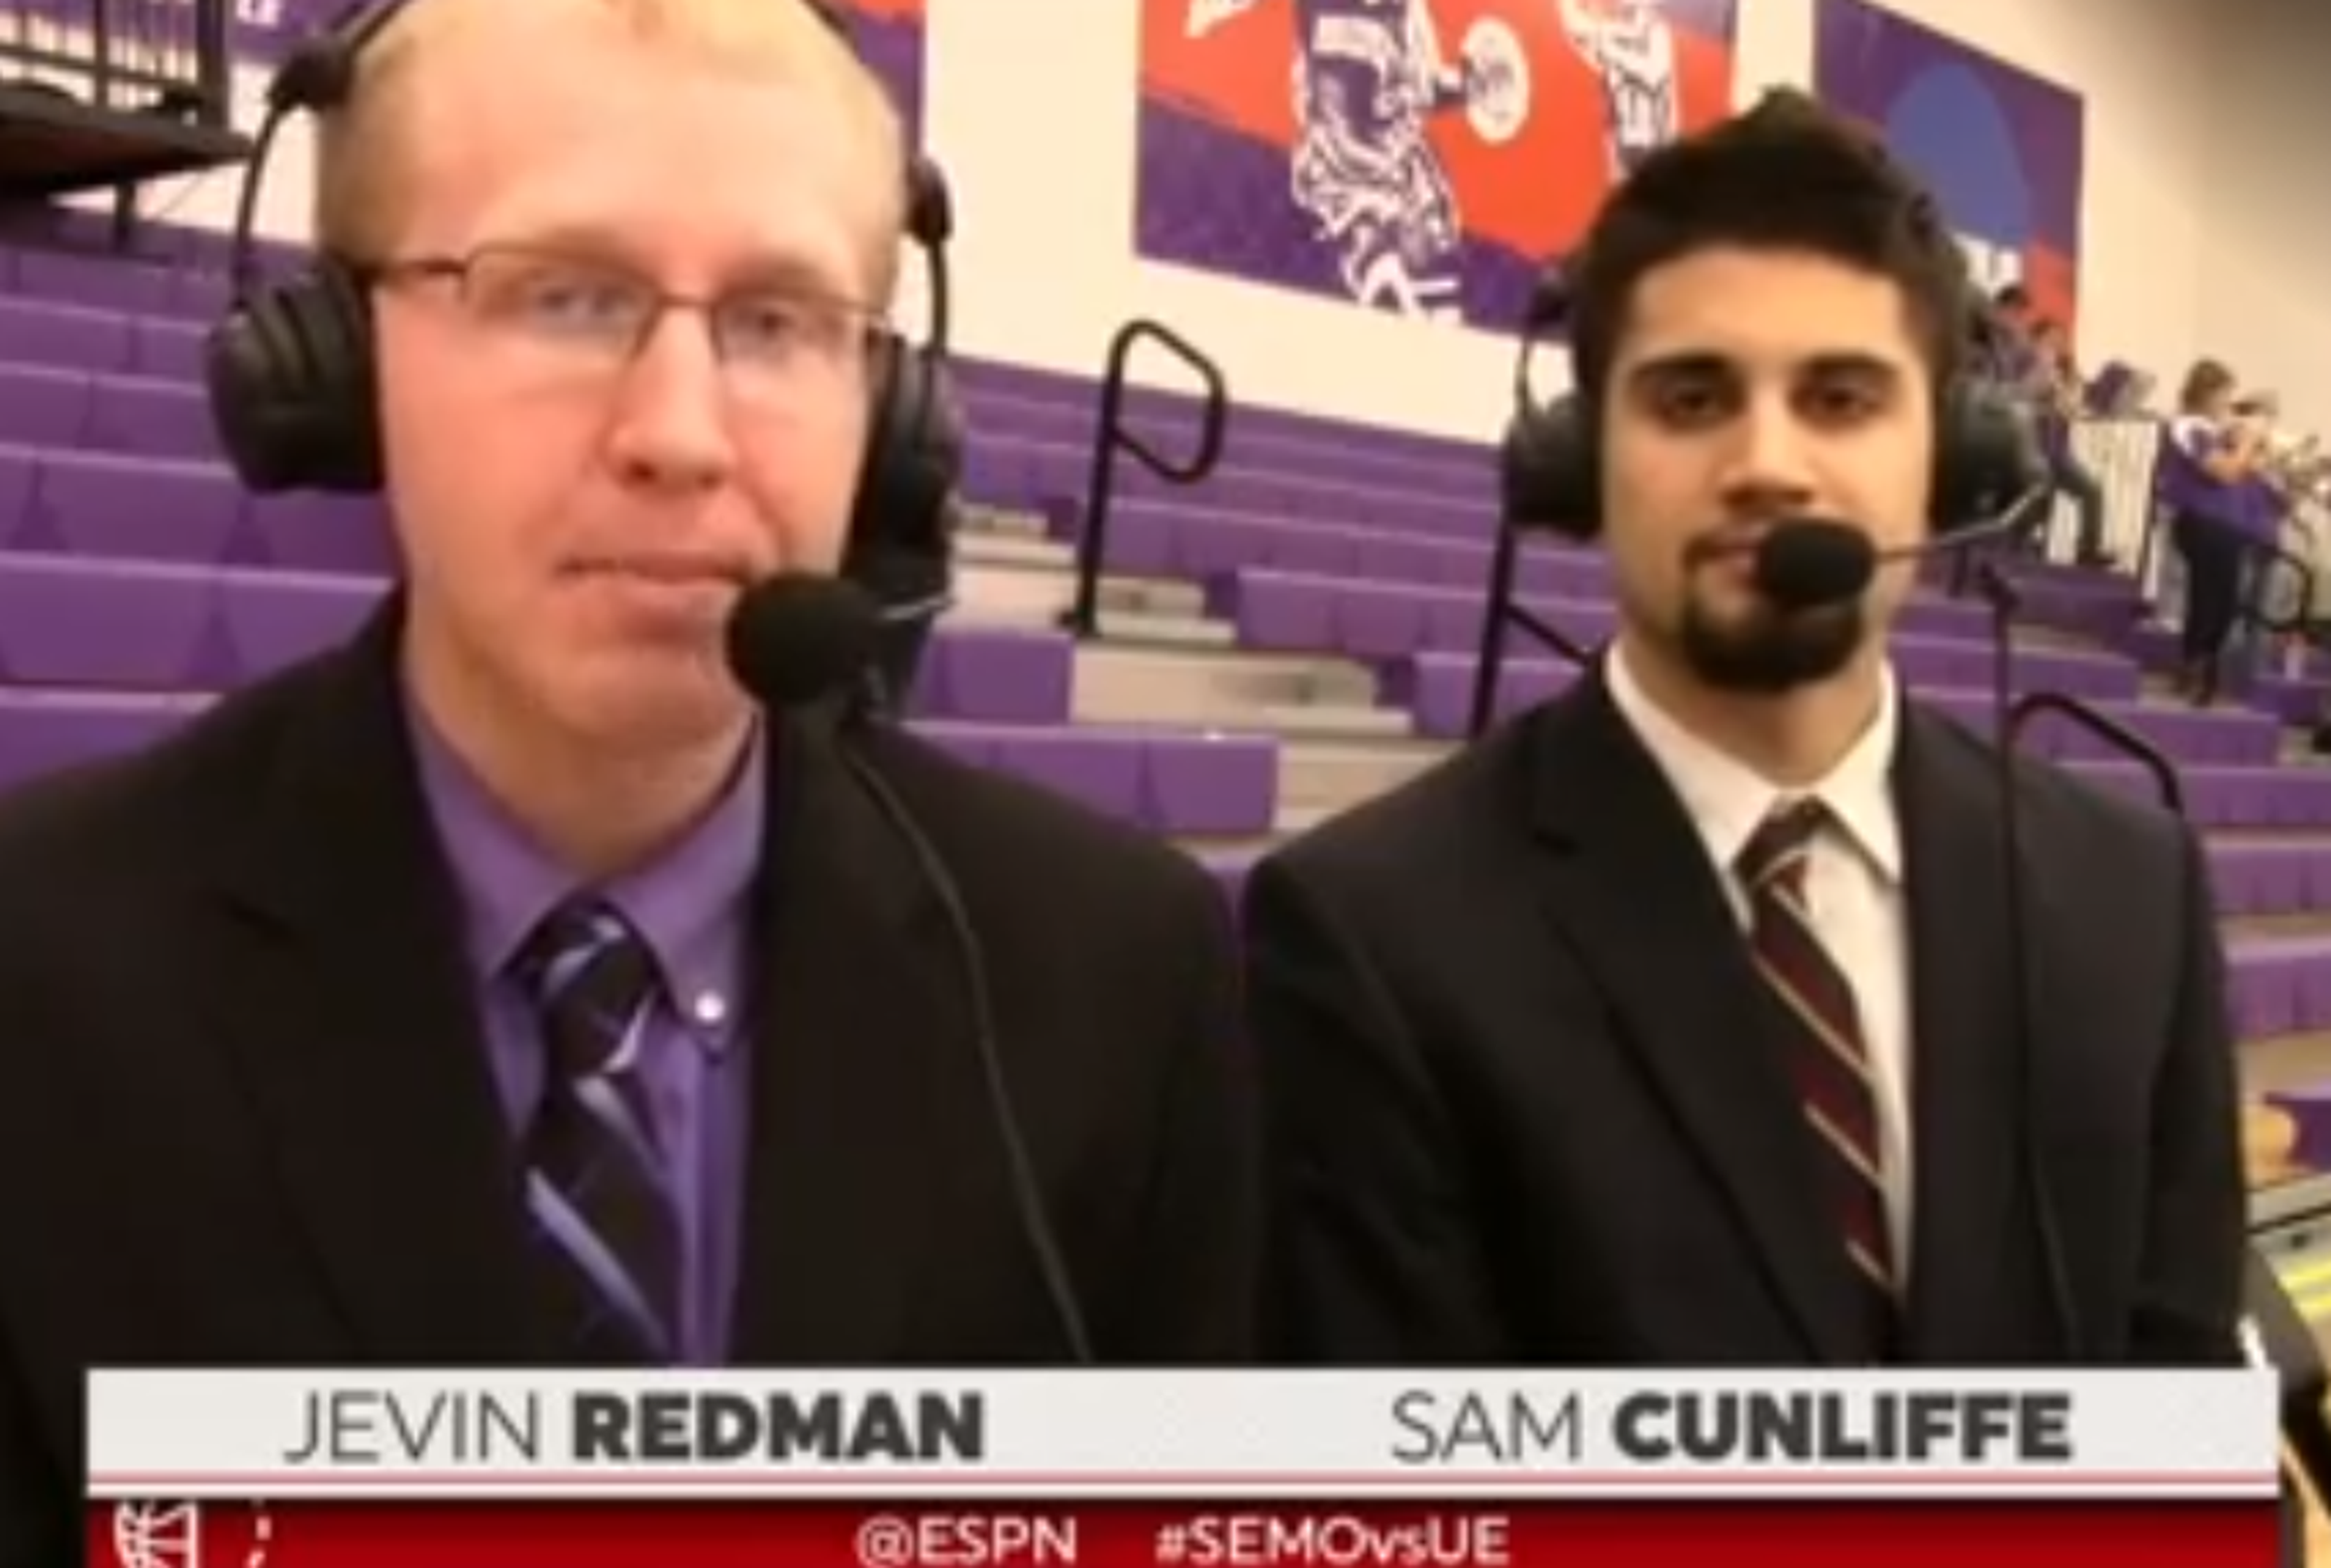 Evansville basketball redshirt Sam Cunliffe served as color commentator alongside Voice of the Aces Jevin Redman during the women's basketball game against Southeast Missouri on Dec. 8.